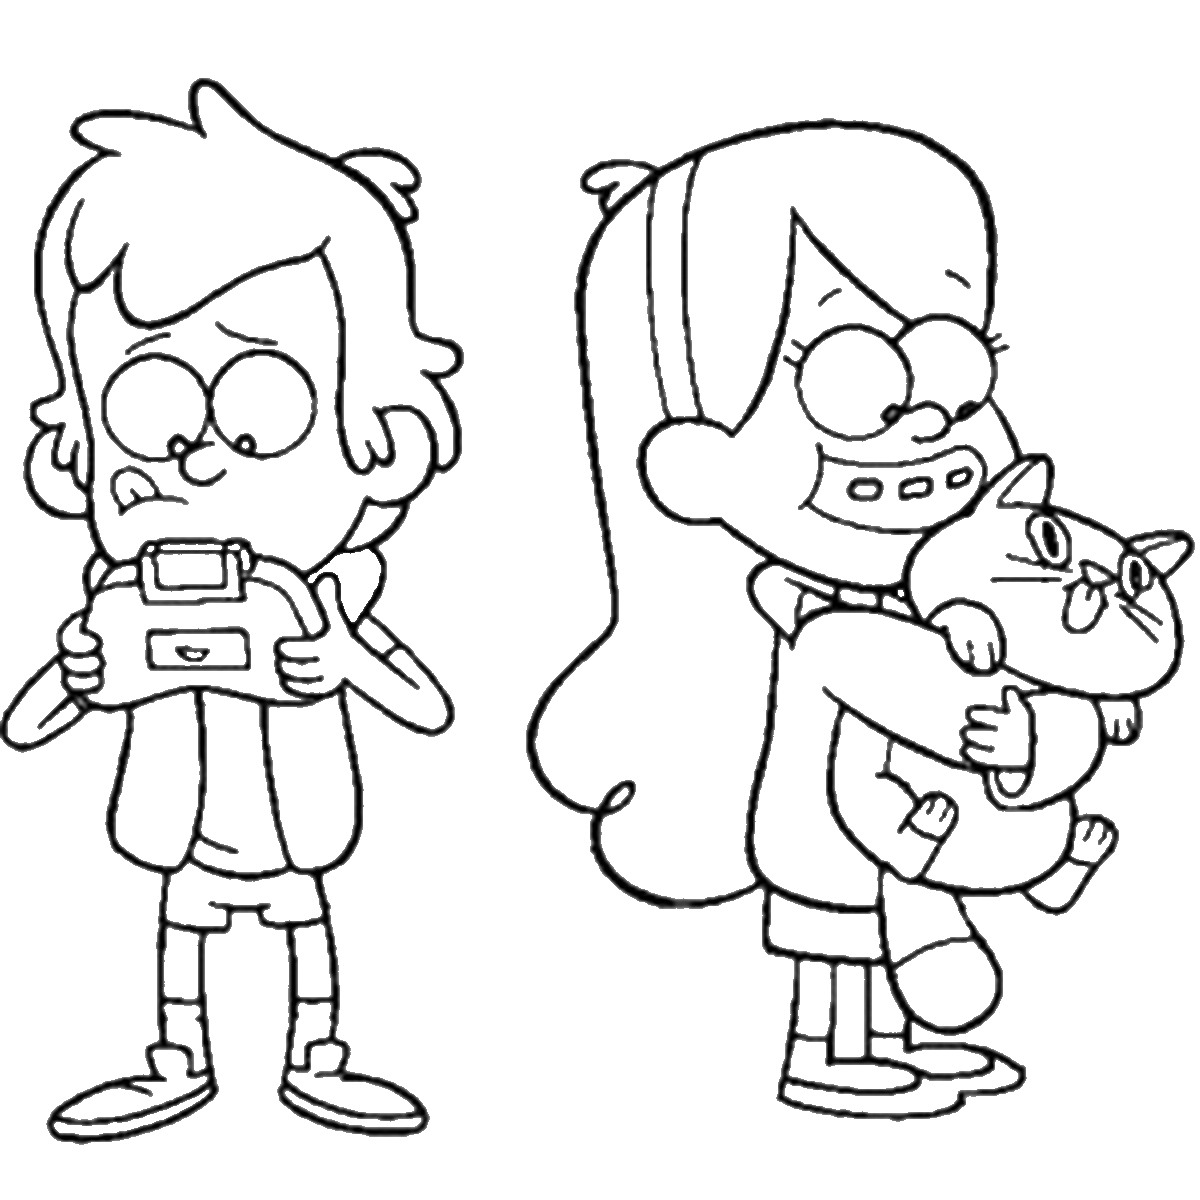 1200x1200 Printable Gravity Falls Coloring Pages